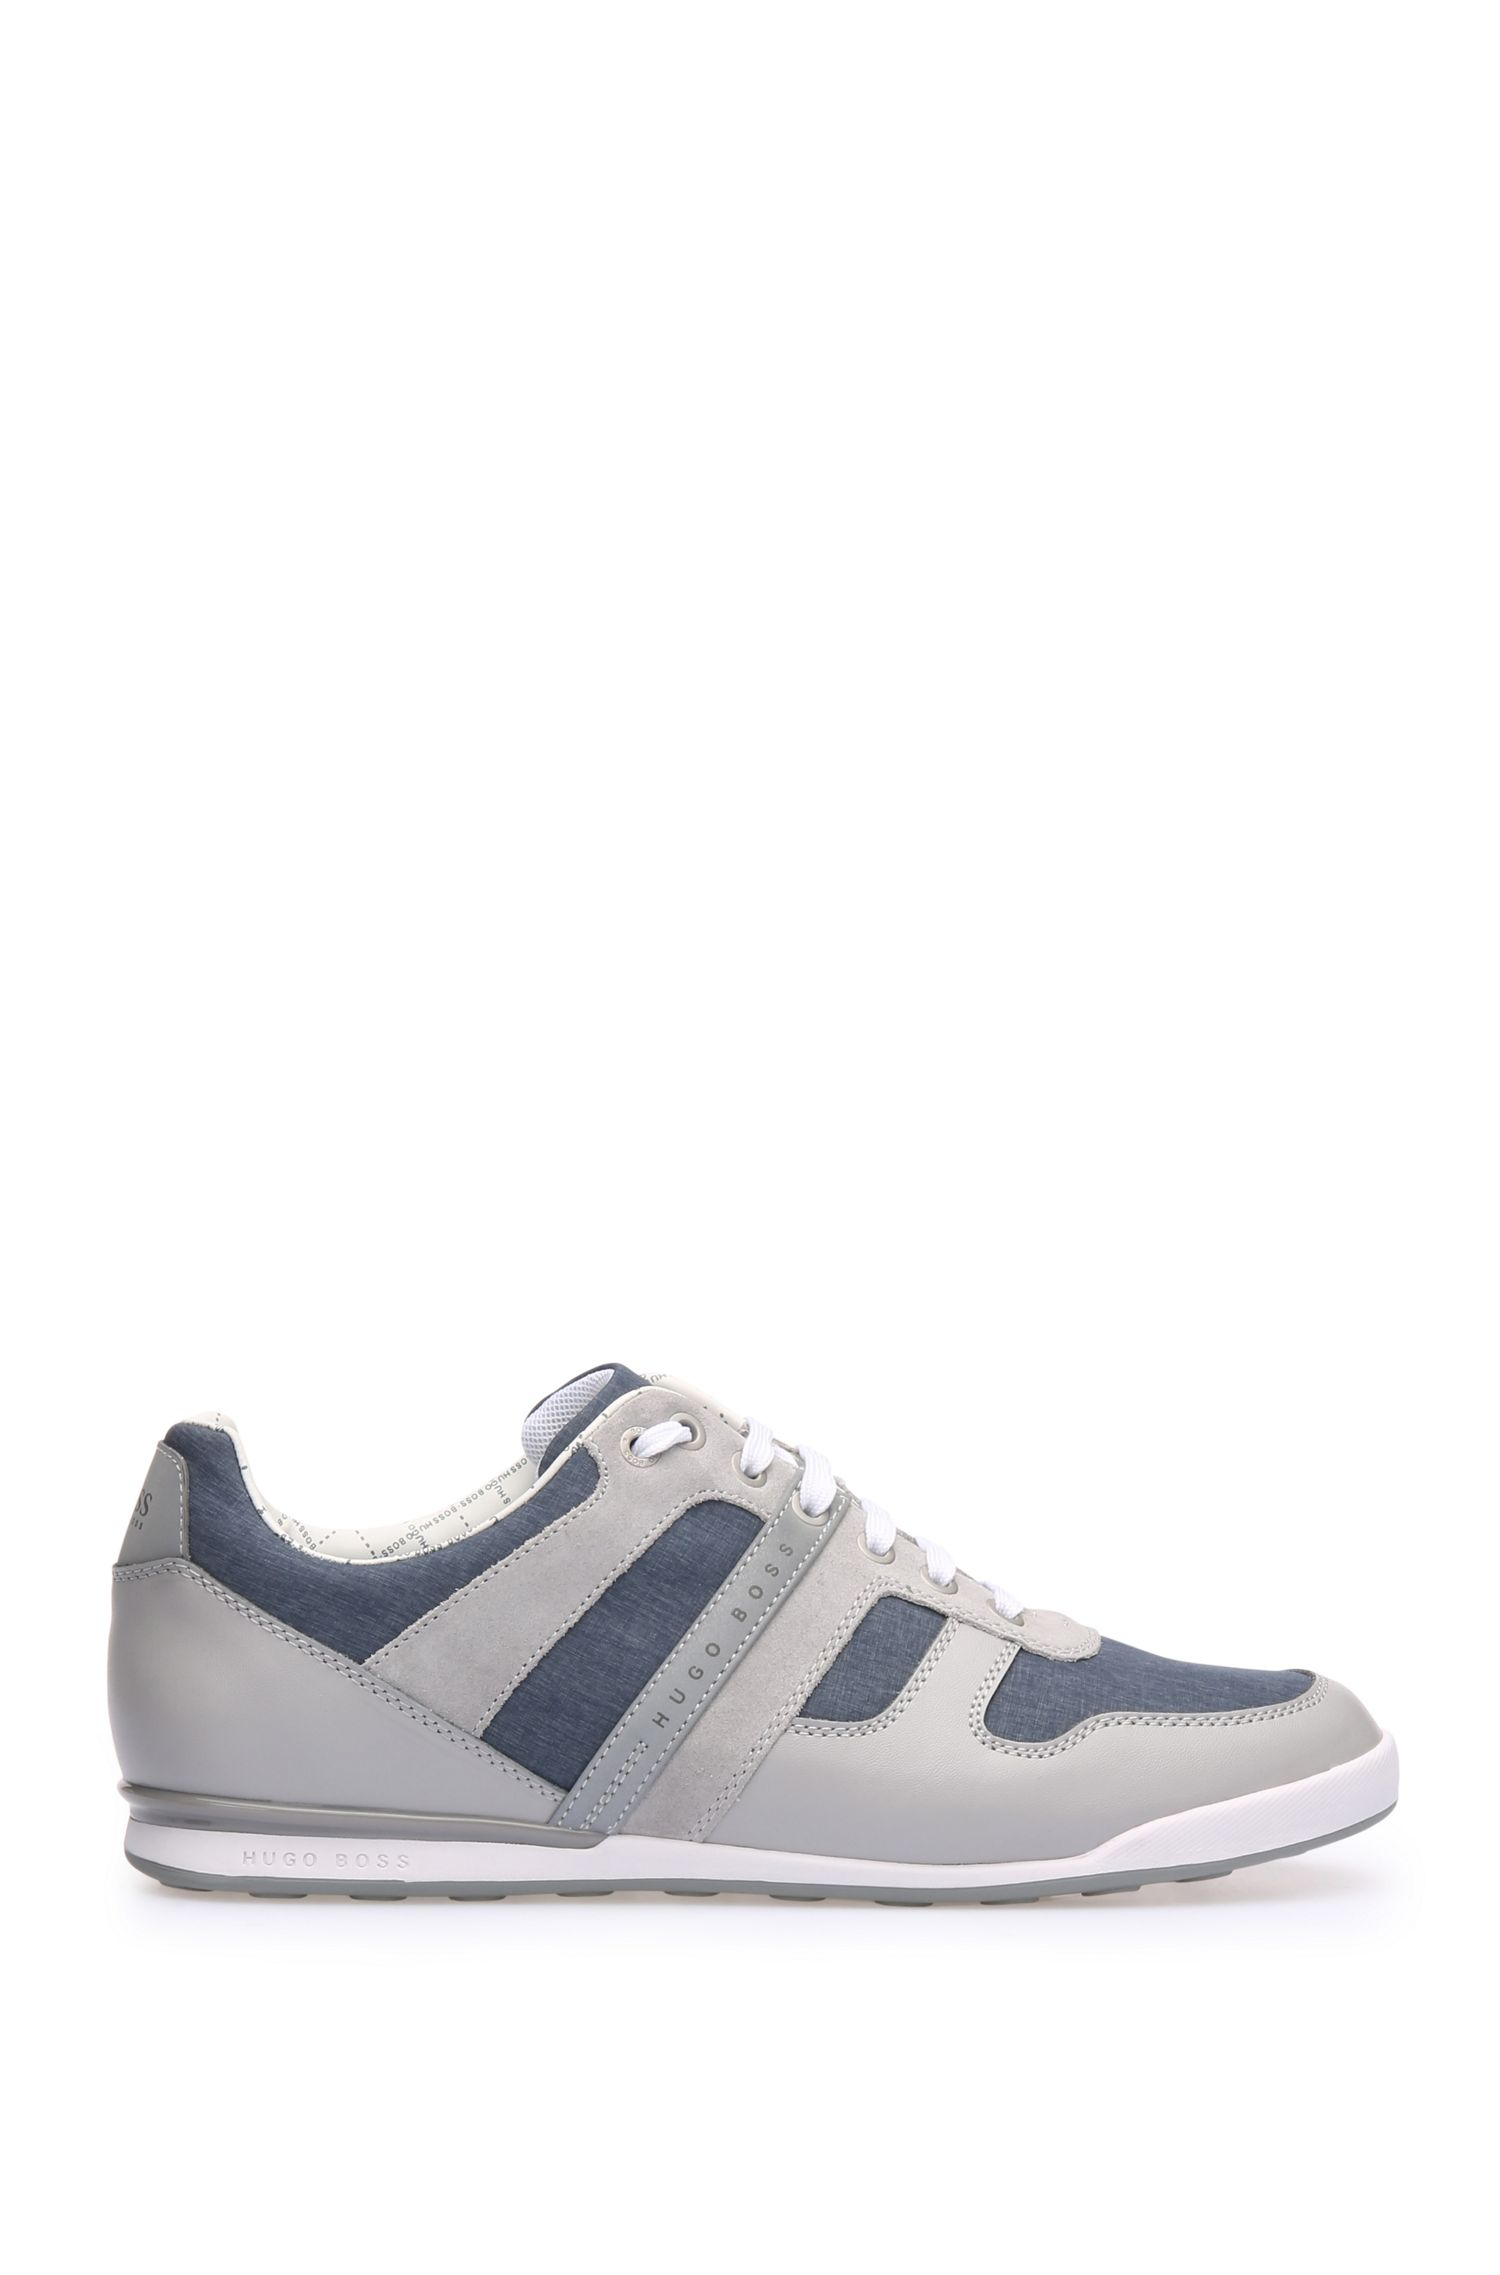 Chambray and Leather Sneaker | Arkansas Lowp Nych